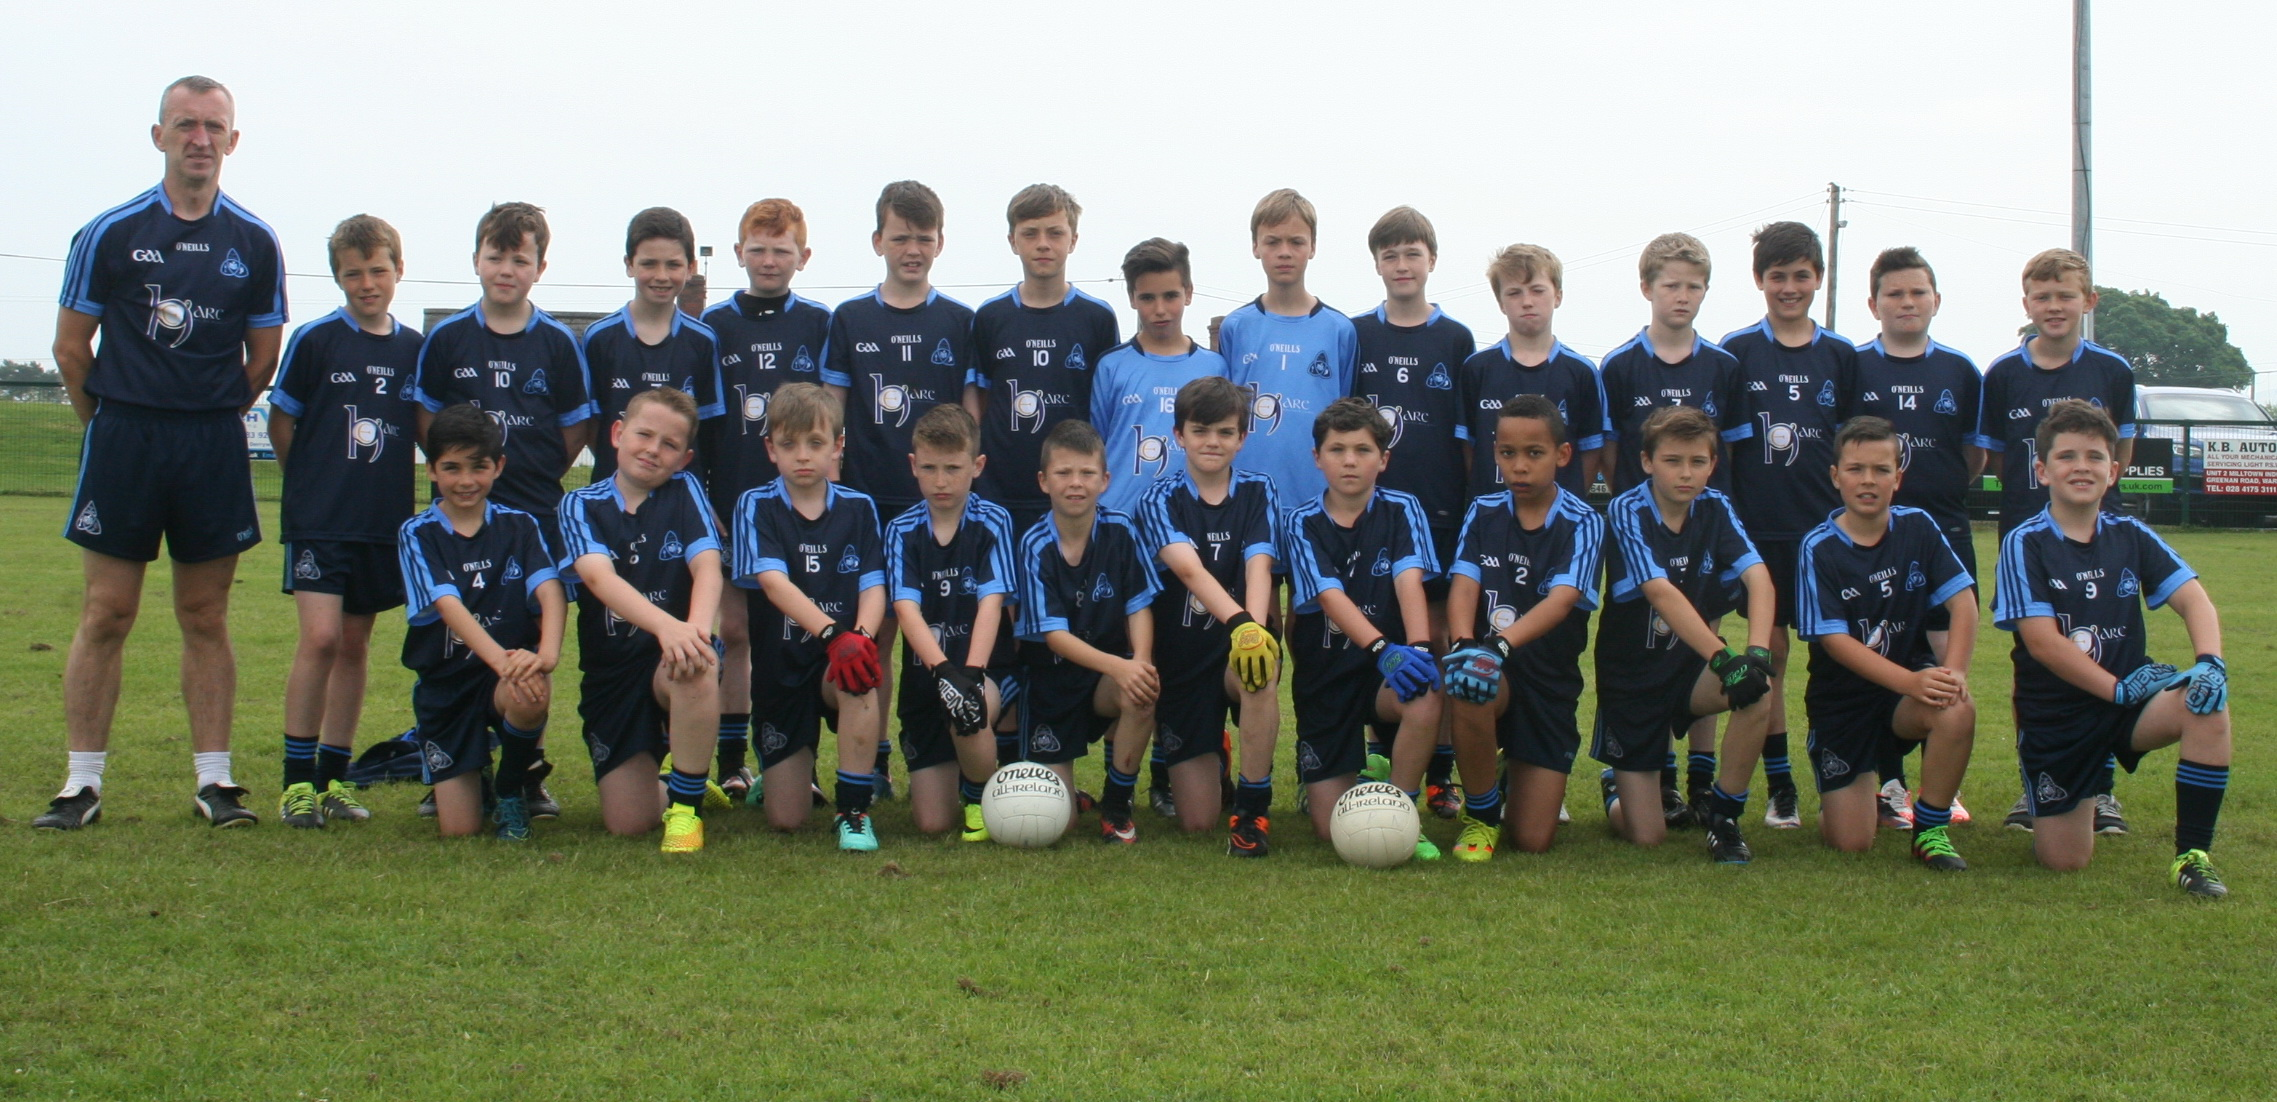 St Dallans give excellent display in best league final for years